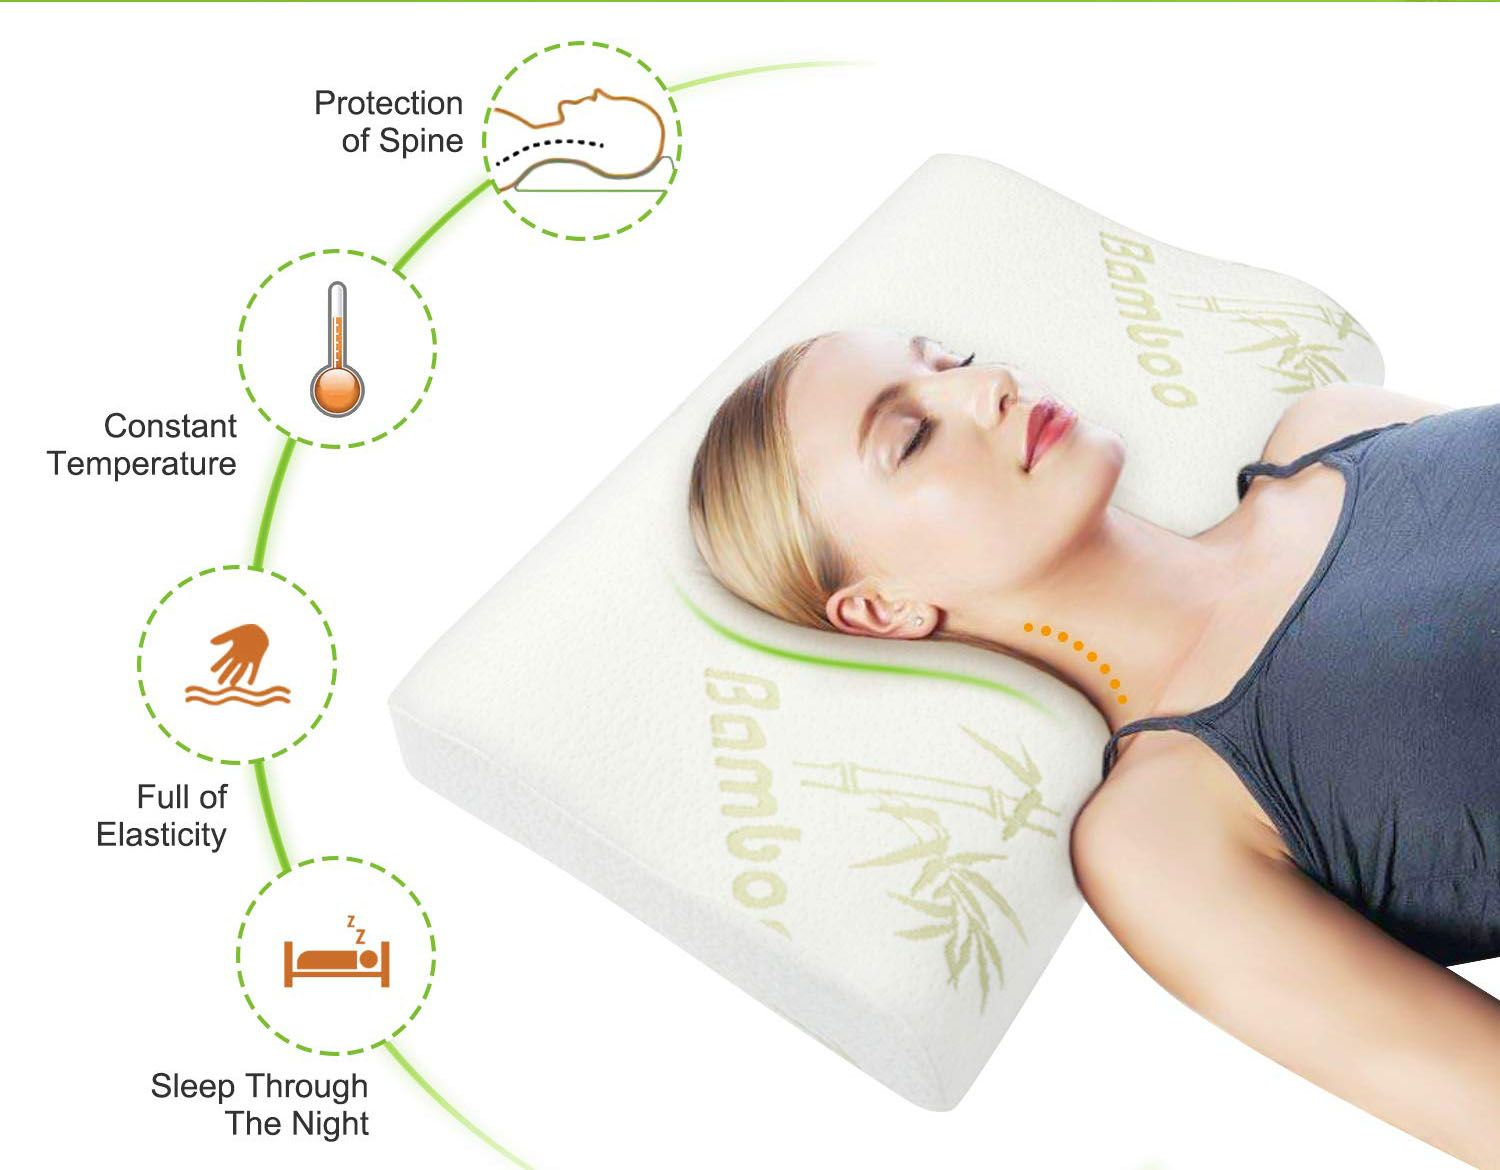 Strong refreshing and breathable feel with bamboo pillow